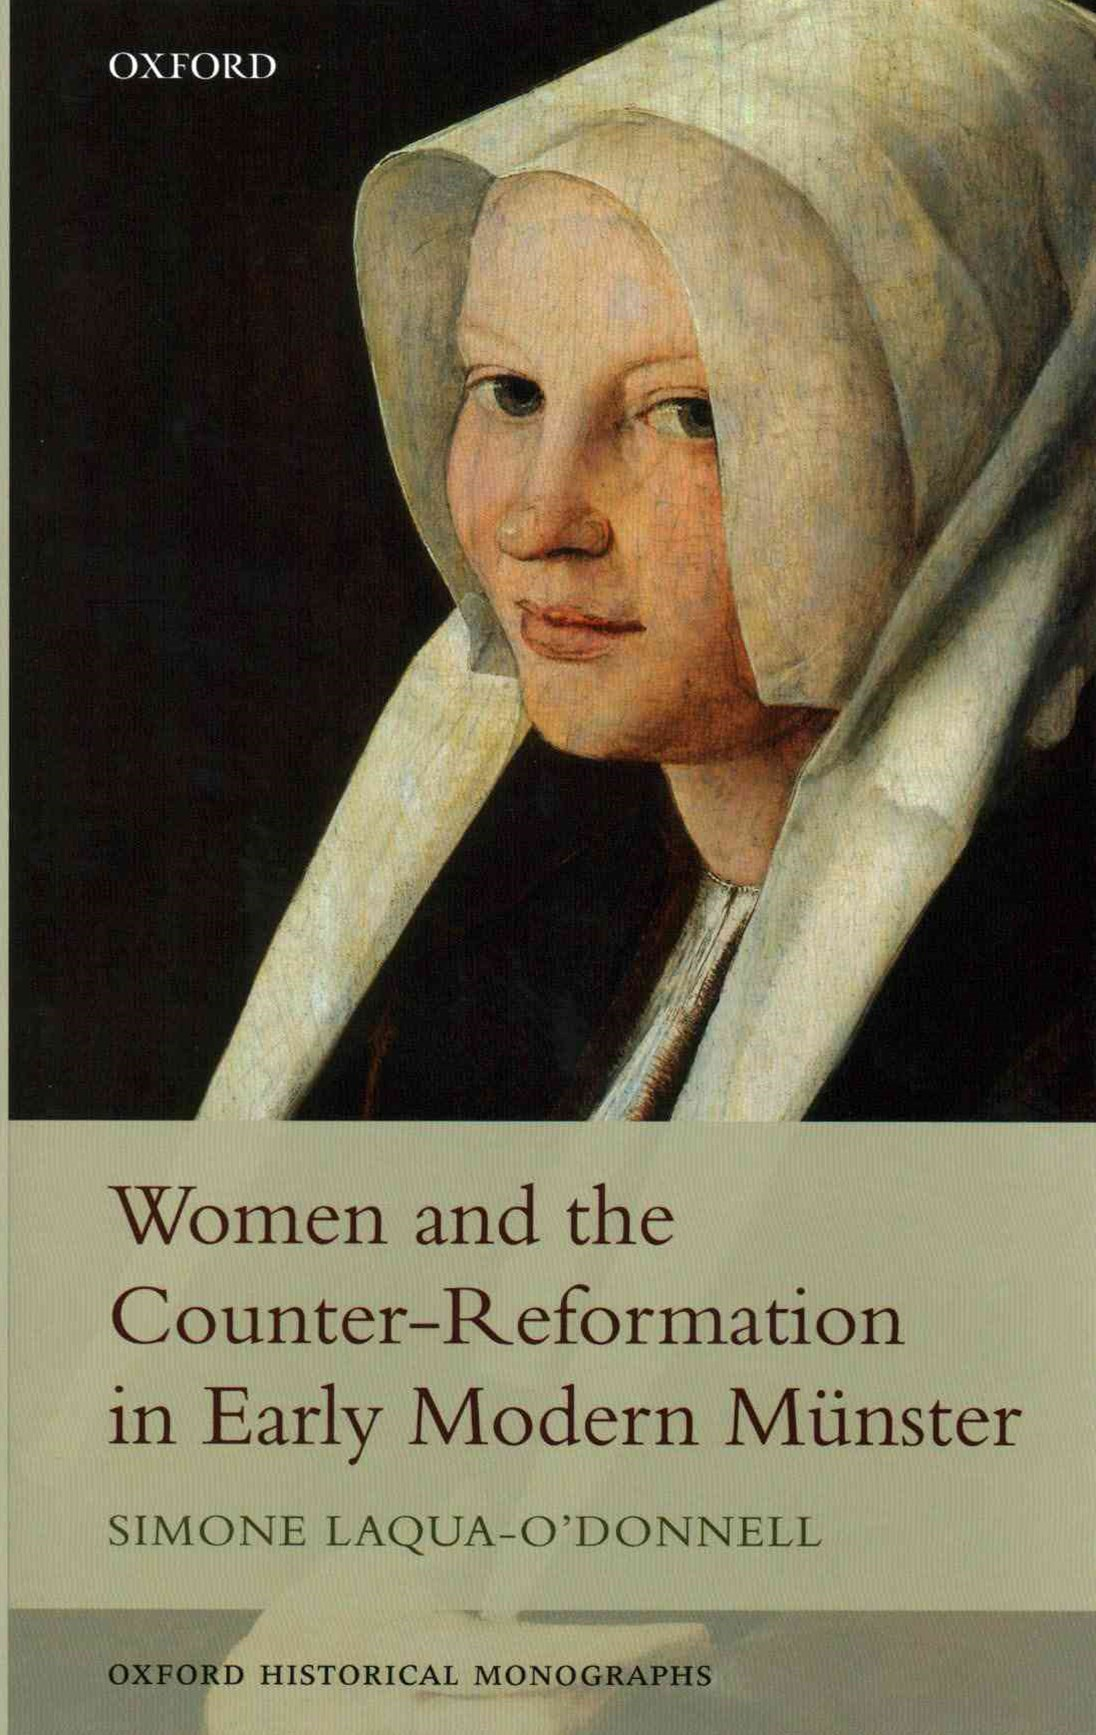 Women and the Counter-Reformation in Early Modern Munster